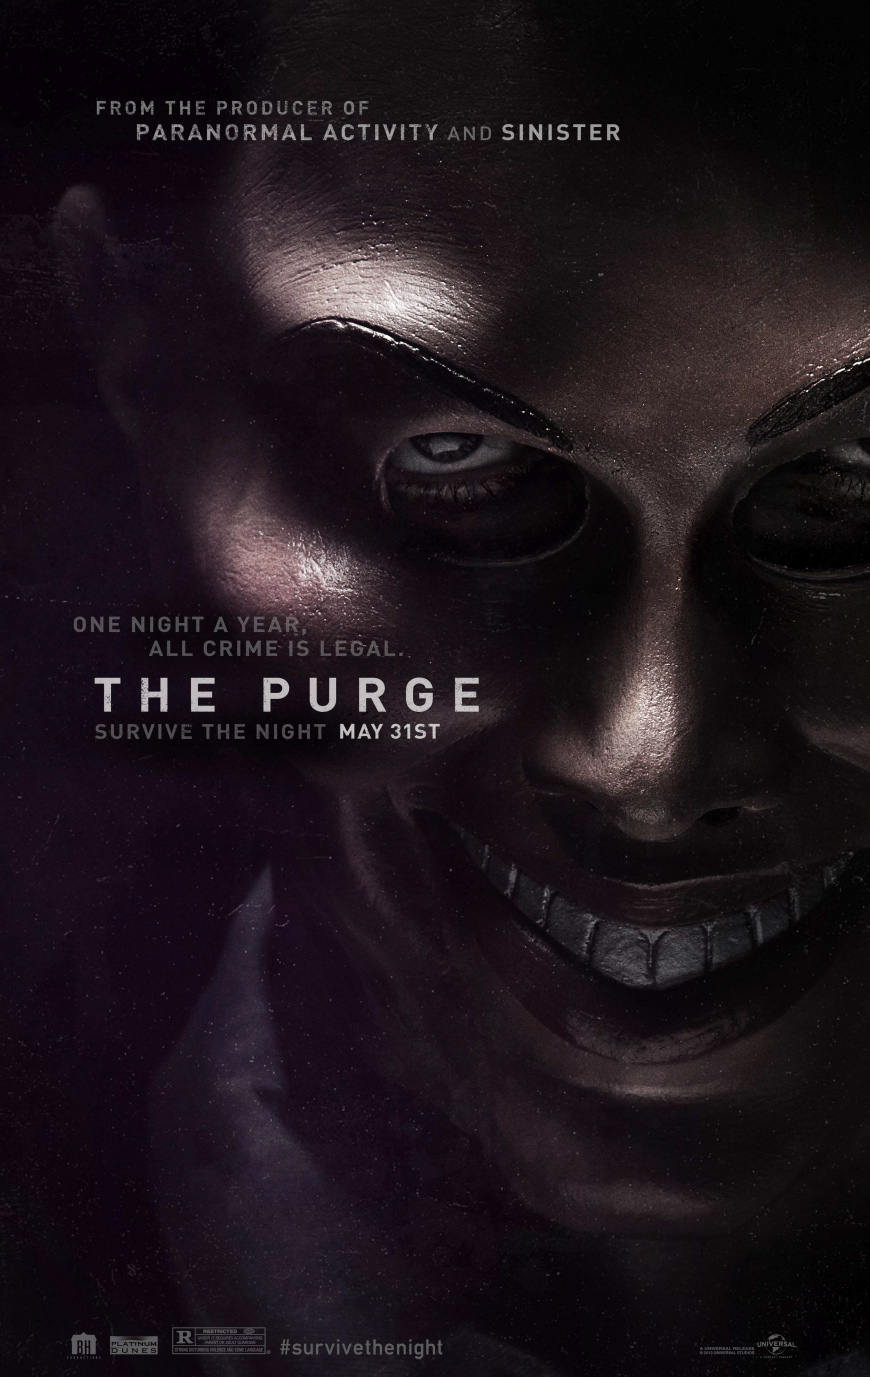 The-Purge-2013-Movie-Poster.jpg